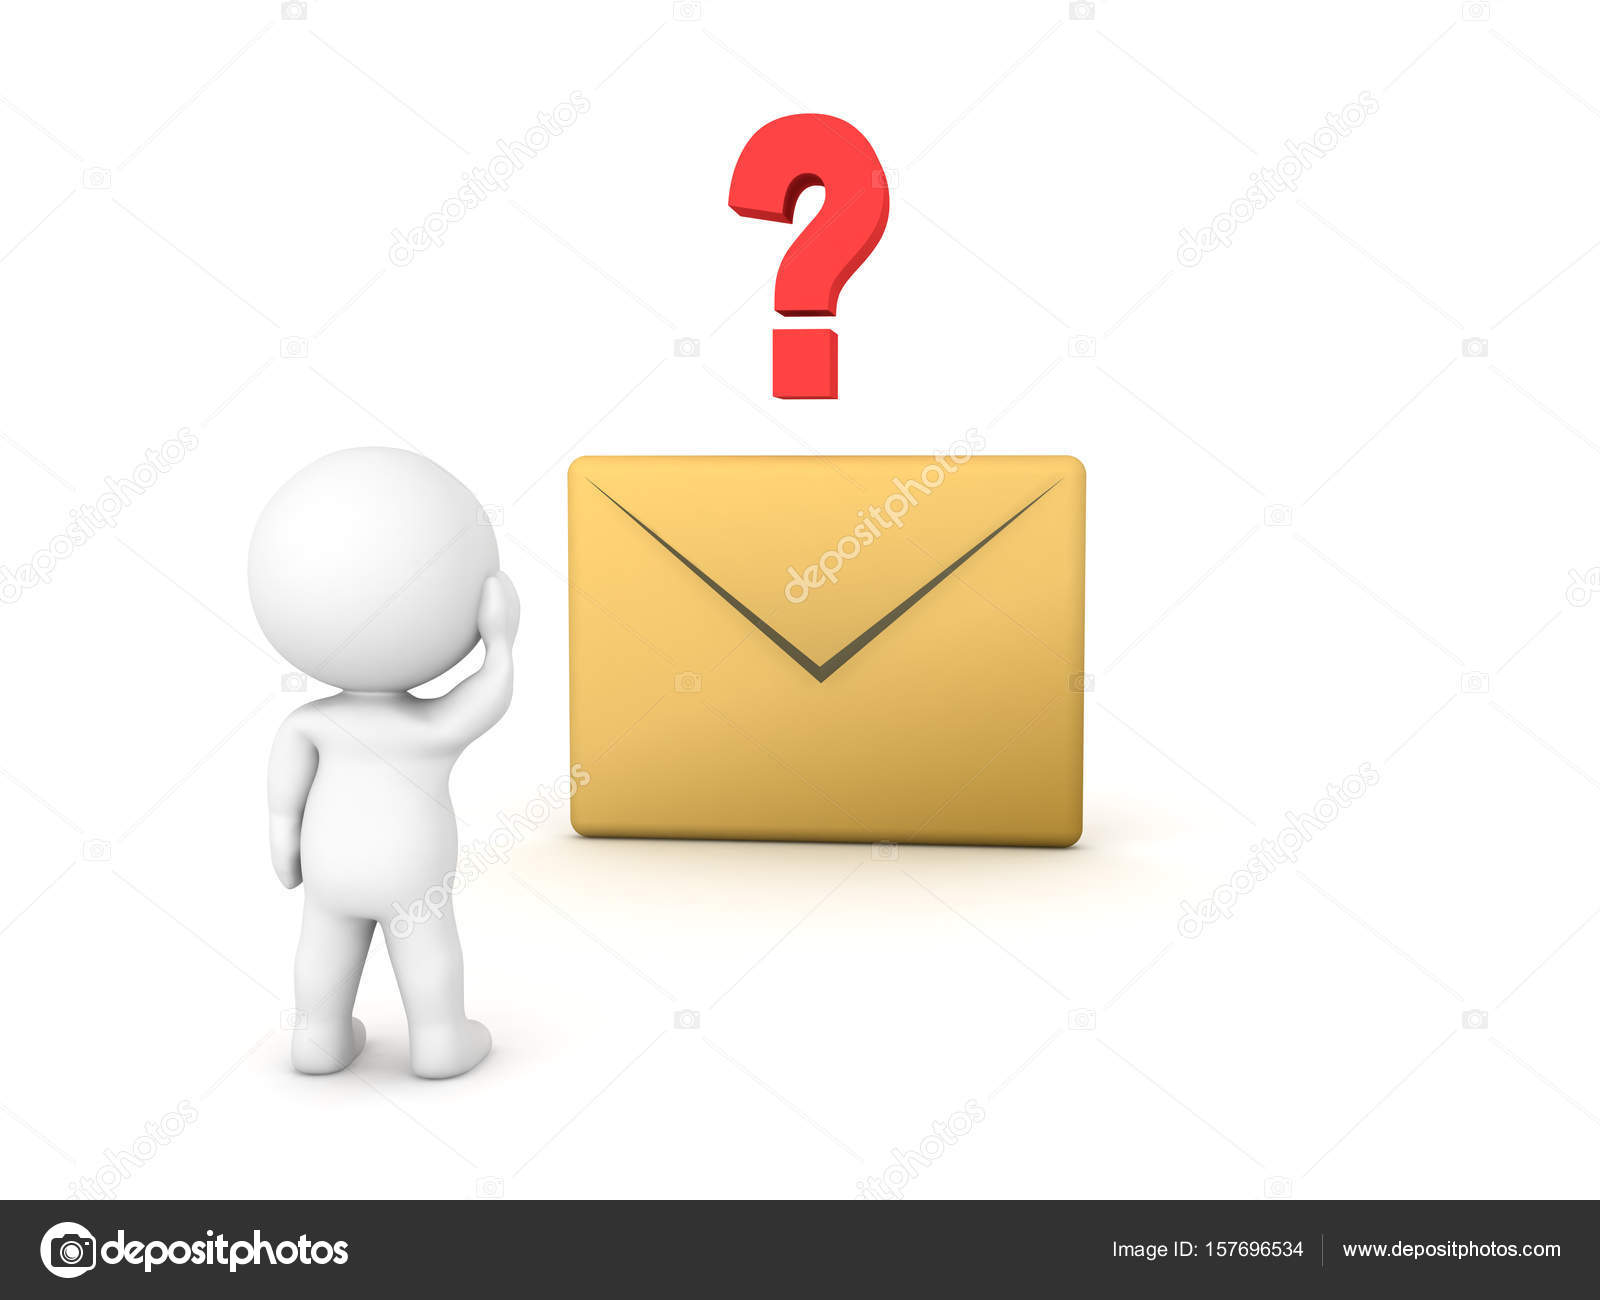 3d character looking at e mail icon with question mark above it 3d character looking at e mail icon with question mark above it stock photo biocorpaavc Choice Image